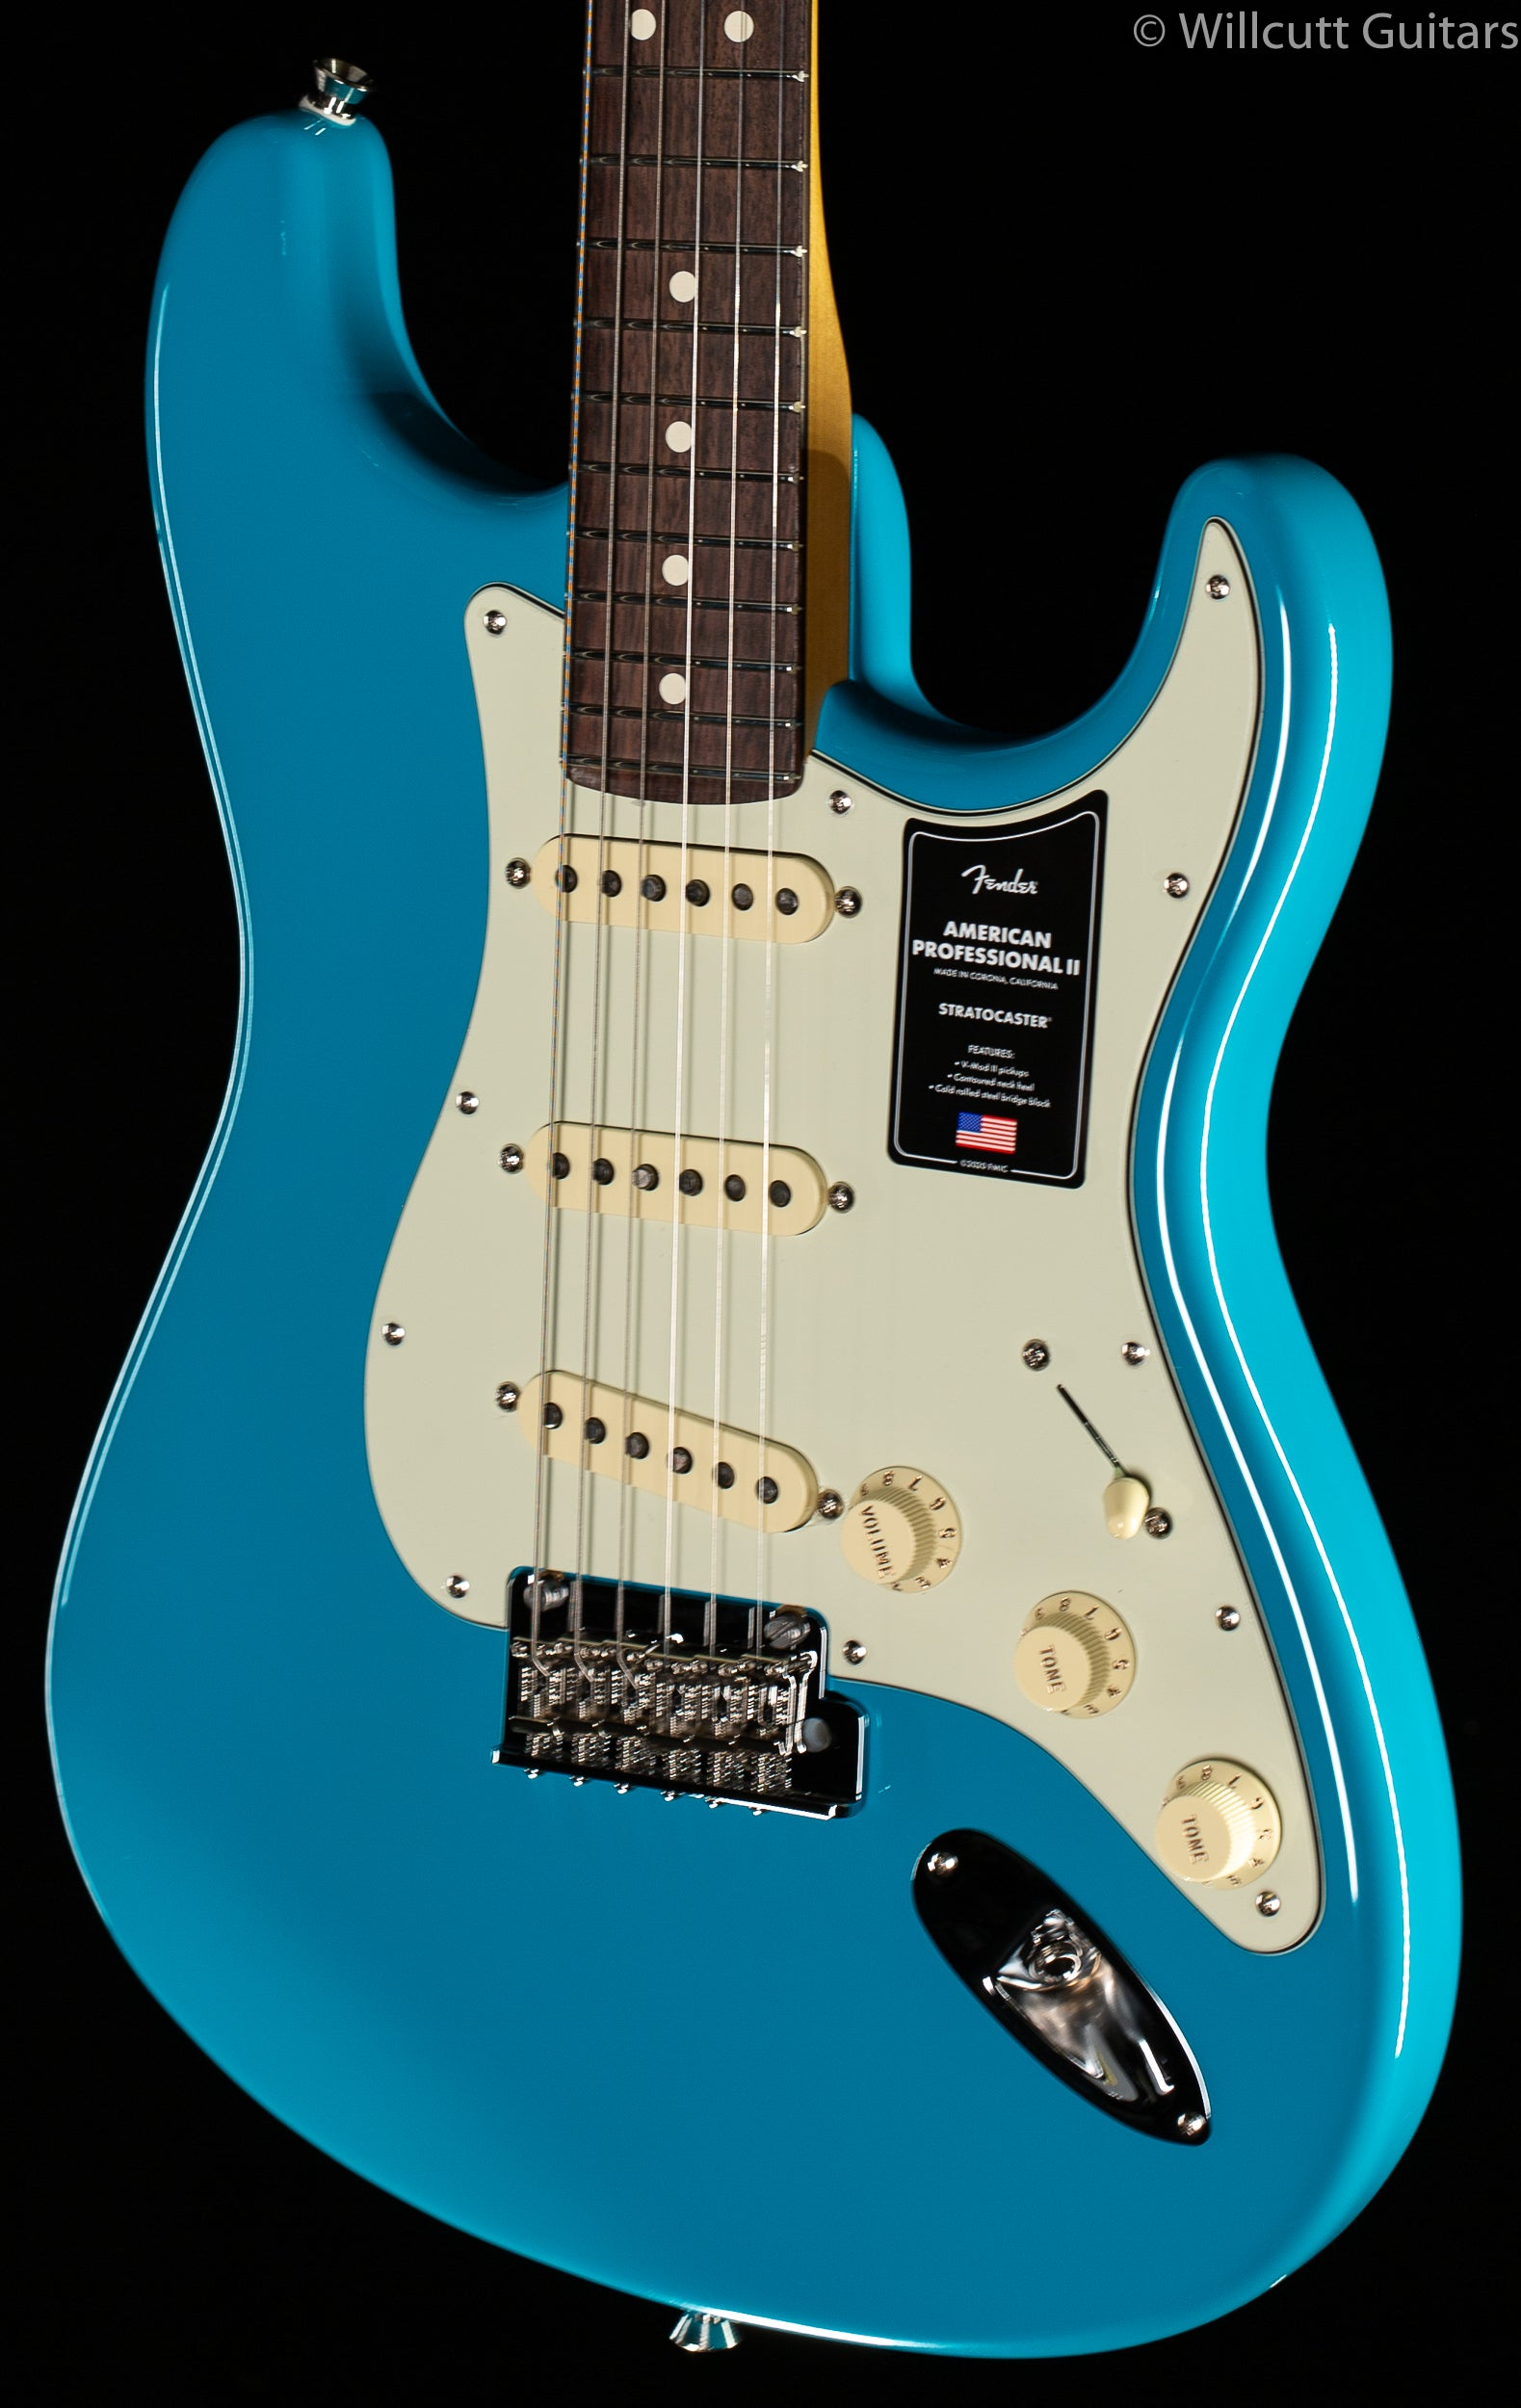 Fender American Professional II Stratocaster Miami Blue Rosewood Fingerboard